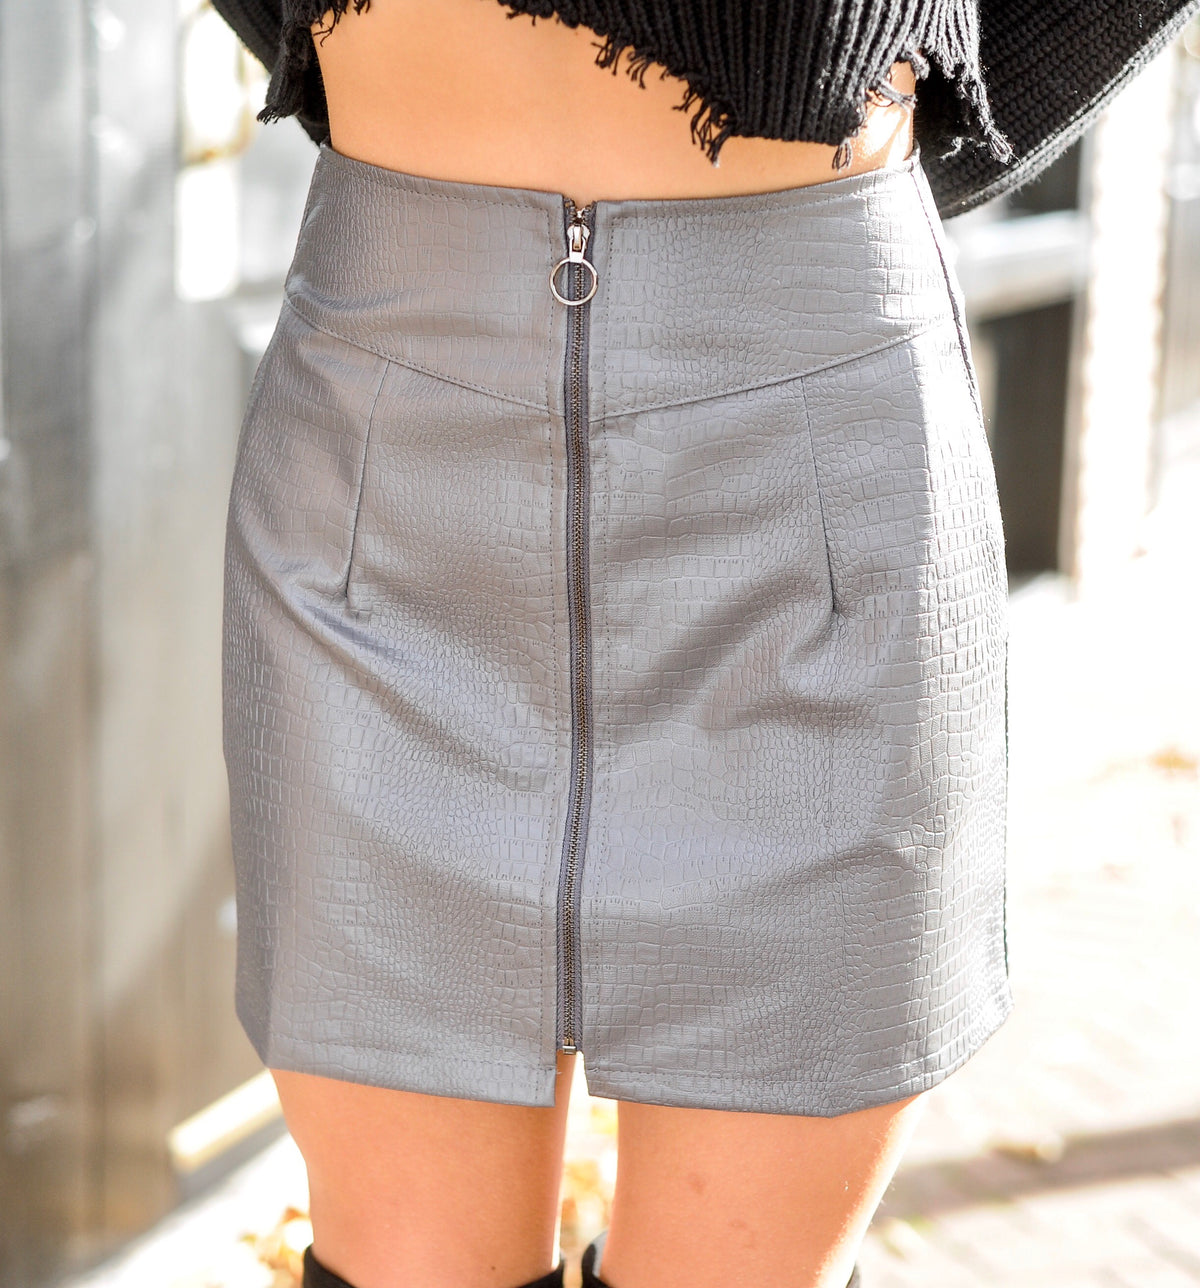 Grey Snakeskin Leather Skirt